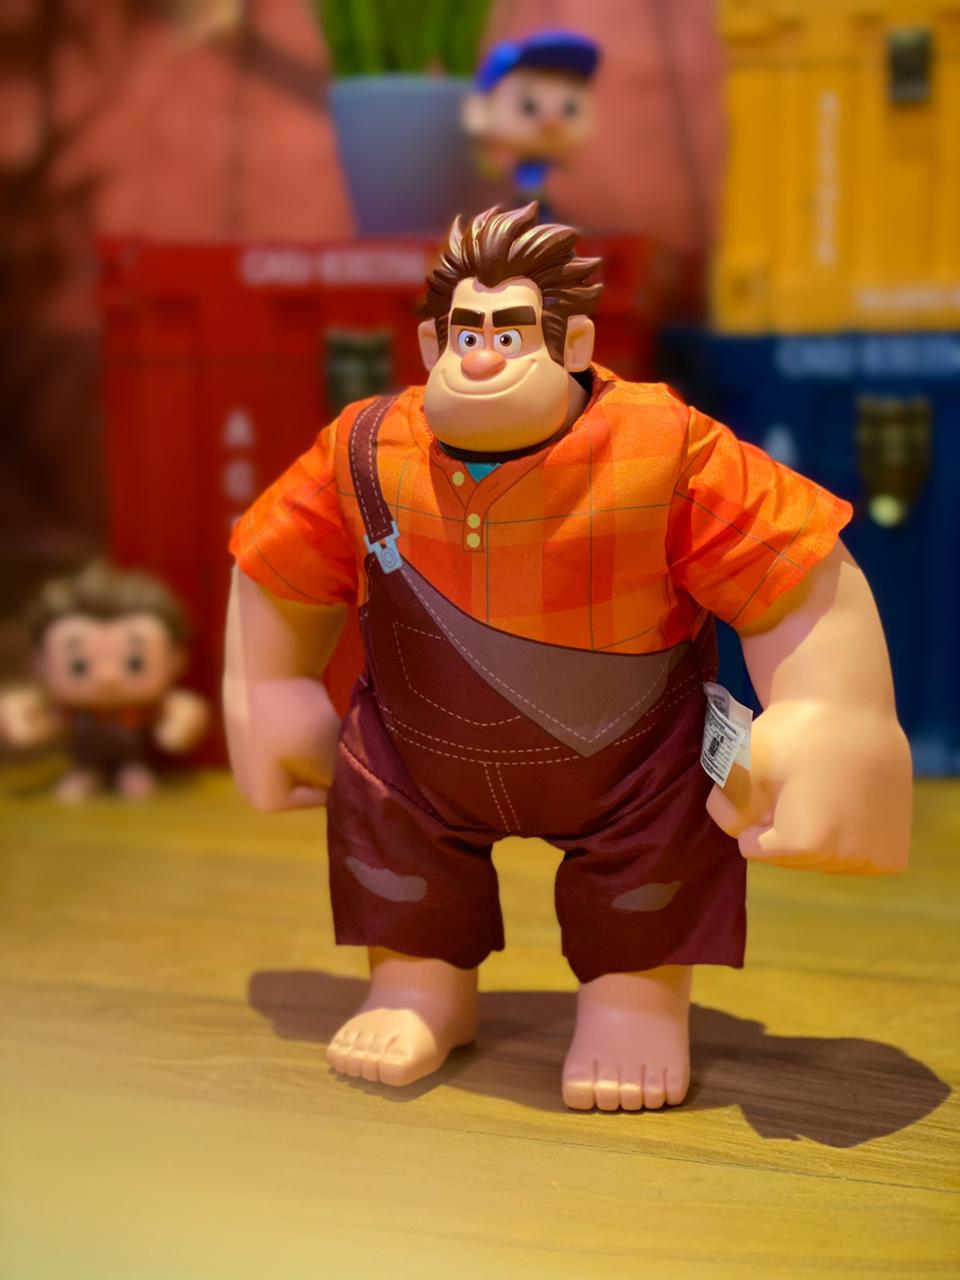 Boneco Detona Ralph (Wreck It Ralph): WiFi Ralph Quebrando a Internet (Ralph Breaks the Internet) Som e Movimento - Disney